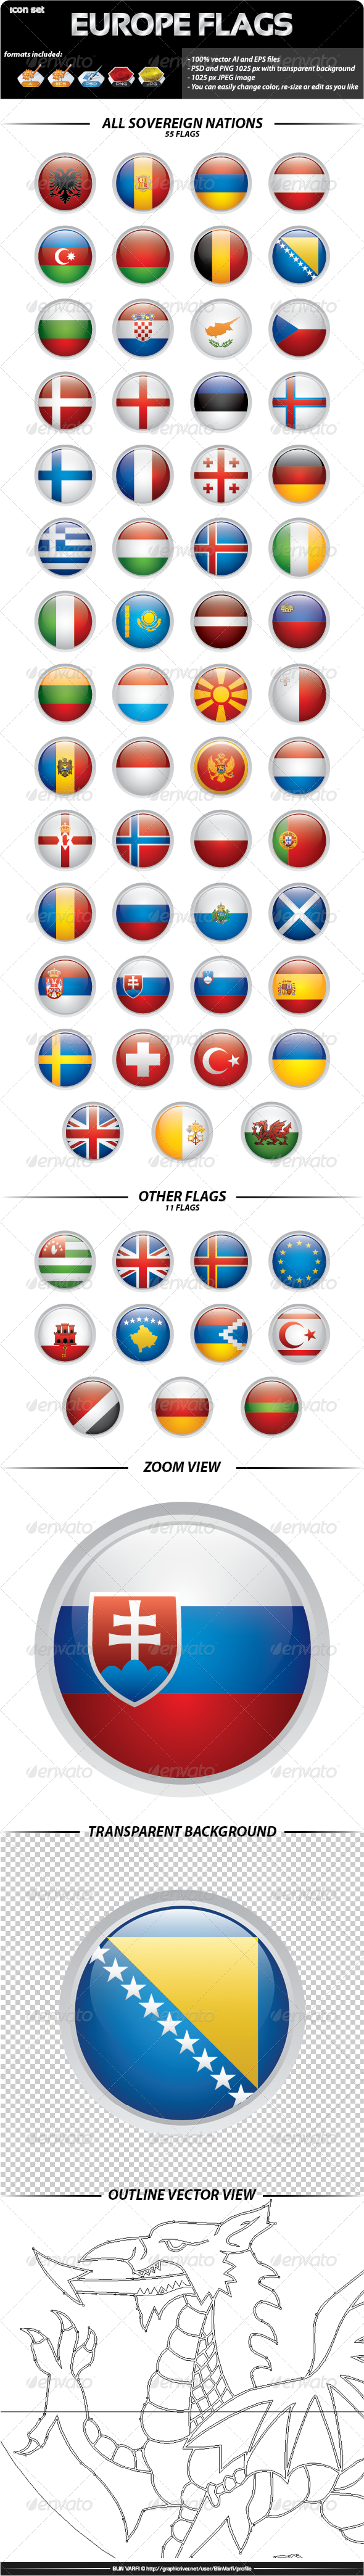 GraphicRiver Europe Flags Rounded Icons 3289141